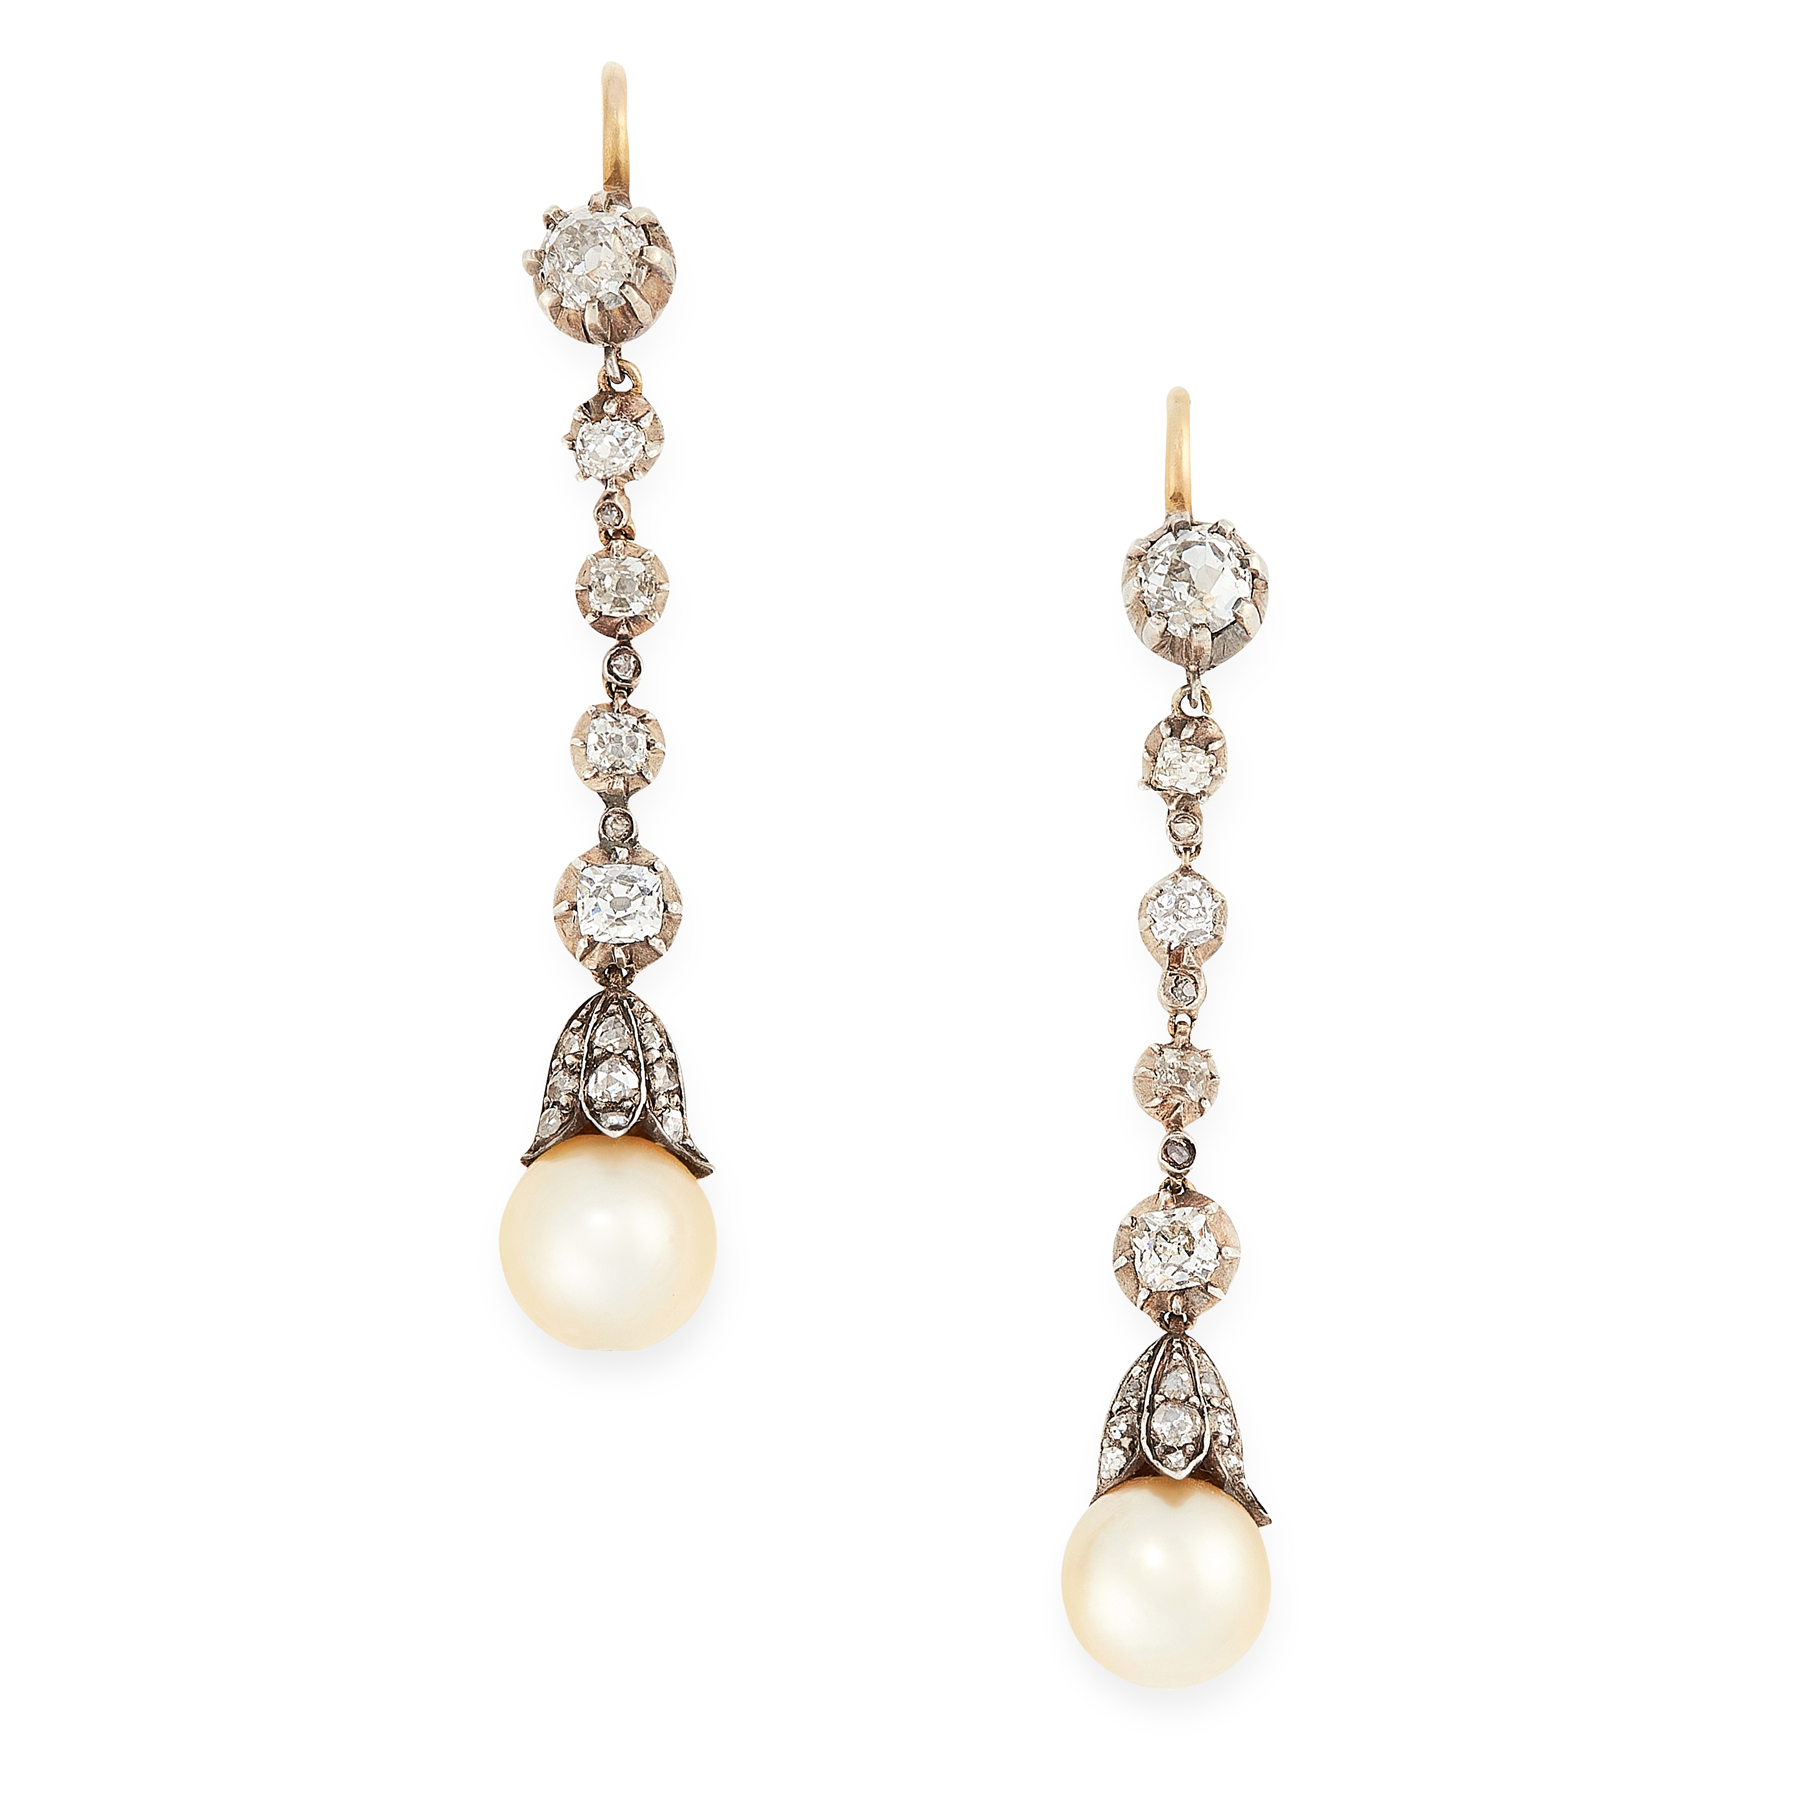 A PAIR OF ANTIQUE NATURAL SALTWATER PEARL AND DIAMOND DROP EARRINGS in yellow gold and silver,